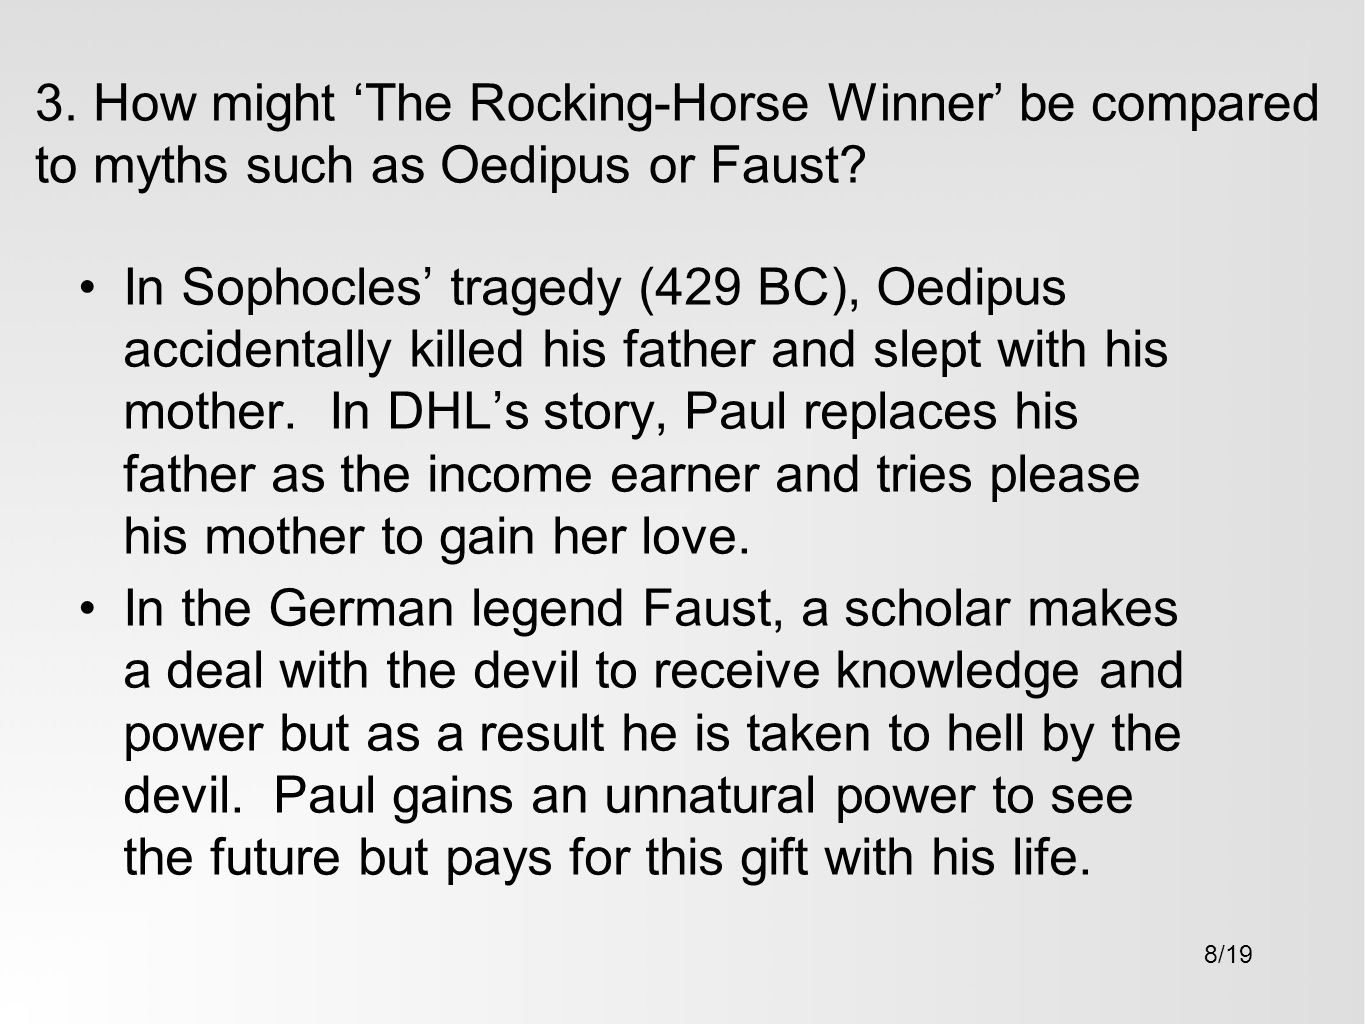 an analysis of the topic of the fall of the house of usher and the rocking horse winner by d h lawre Table of contents for literature : an introduction to fiction, poetry, drama, and writing / [compiled by] xj kennedy, dana gioia, available from the library of congress.